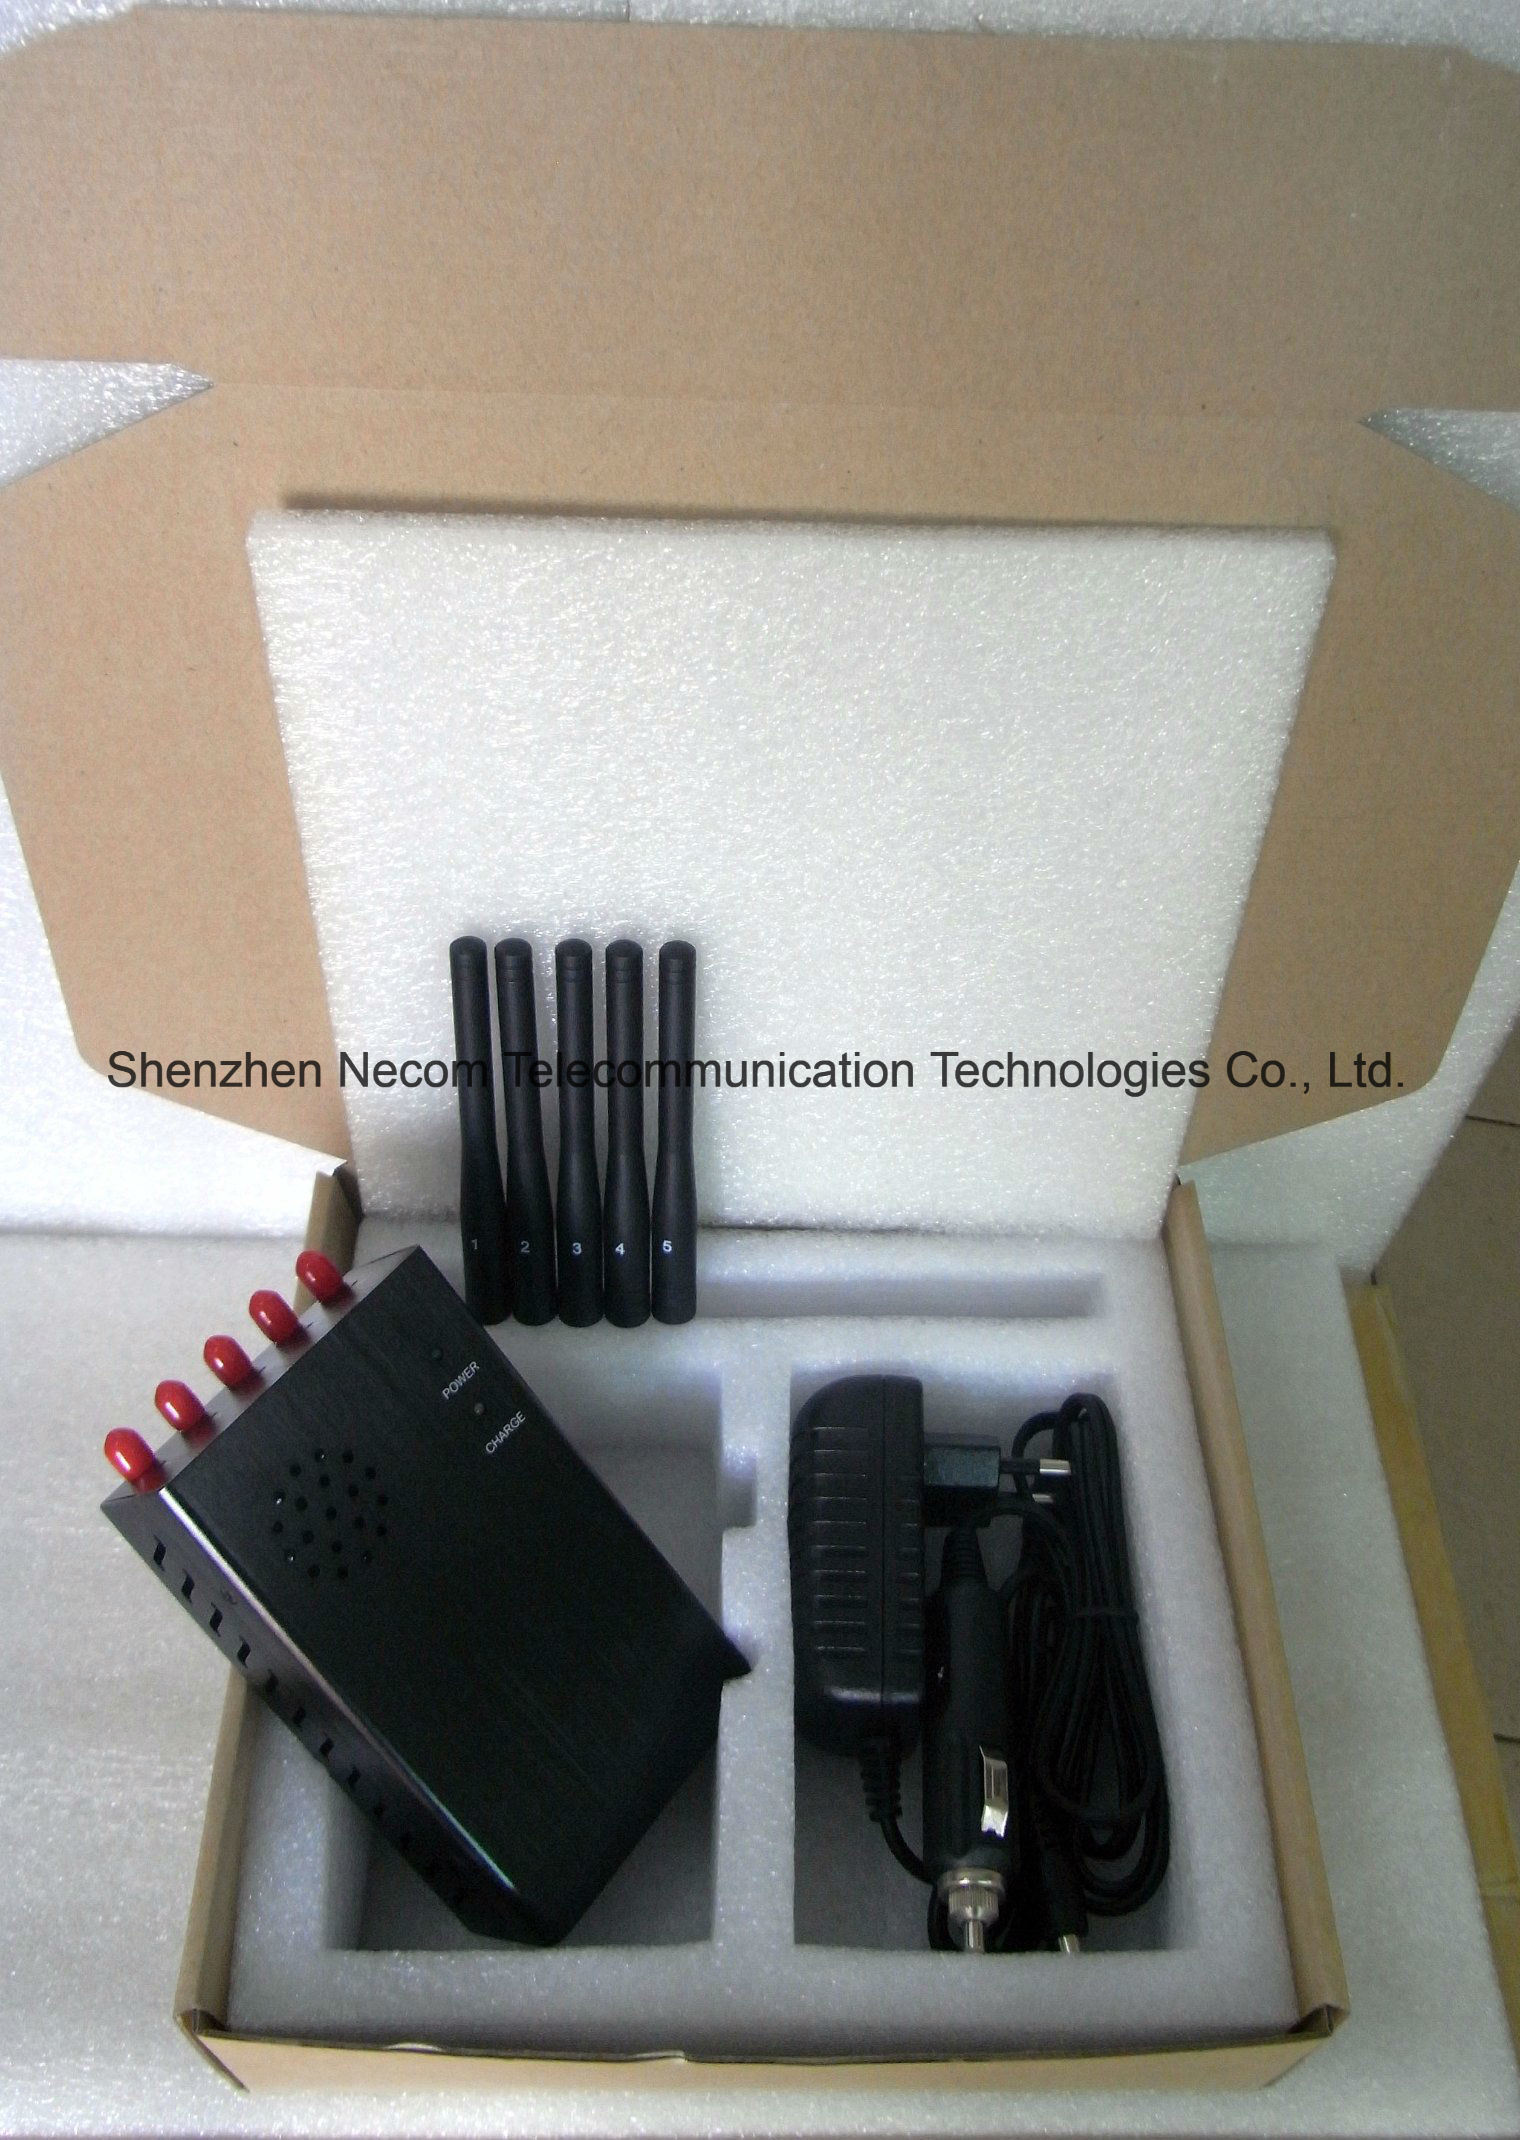 phone jammer florida residents - China 2g+3G+Gpsl1+Lojack 5 Antennas Signal Blockers - China 2g+3G+Gpsl1+Lojack 5 Antennas Signal Blockers, 5 Band Signal Jammers